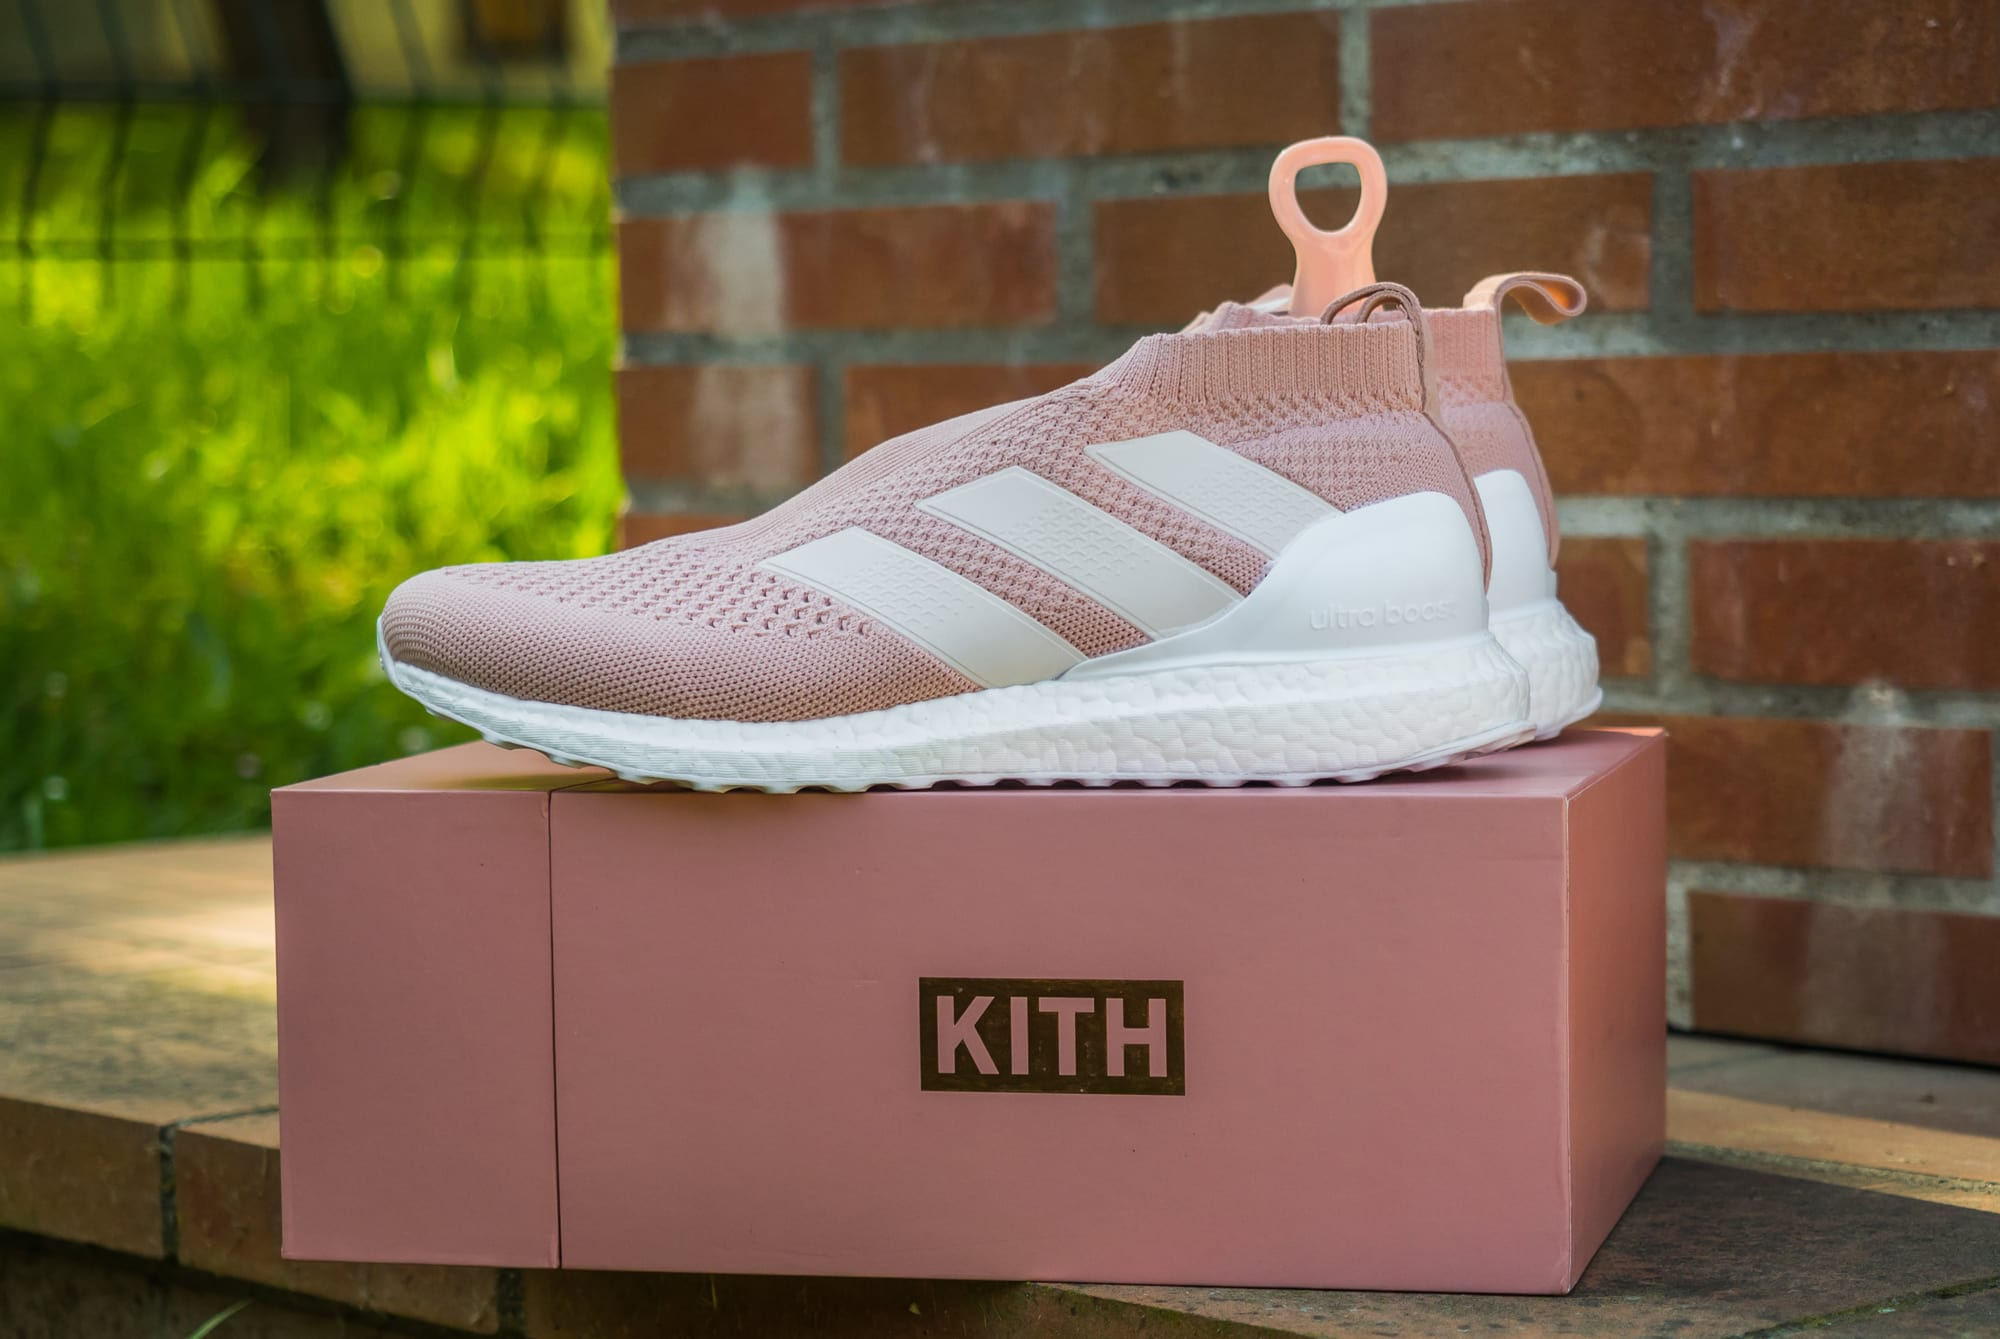 official photos 7e7a3 a4089 KITH x adidas ACE16+ PureControl Ultra Boost Flamingo - Le ...